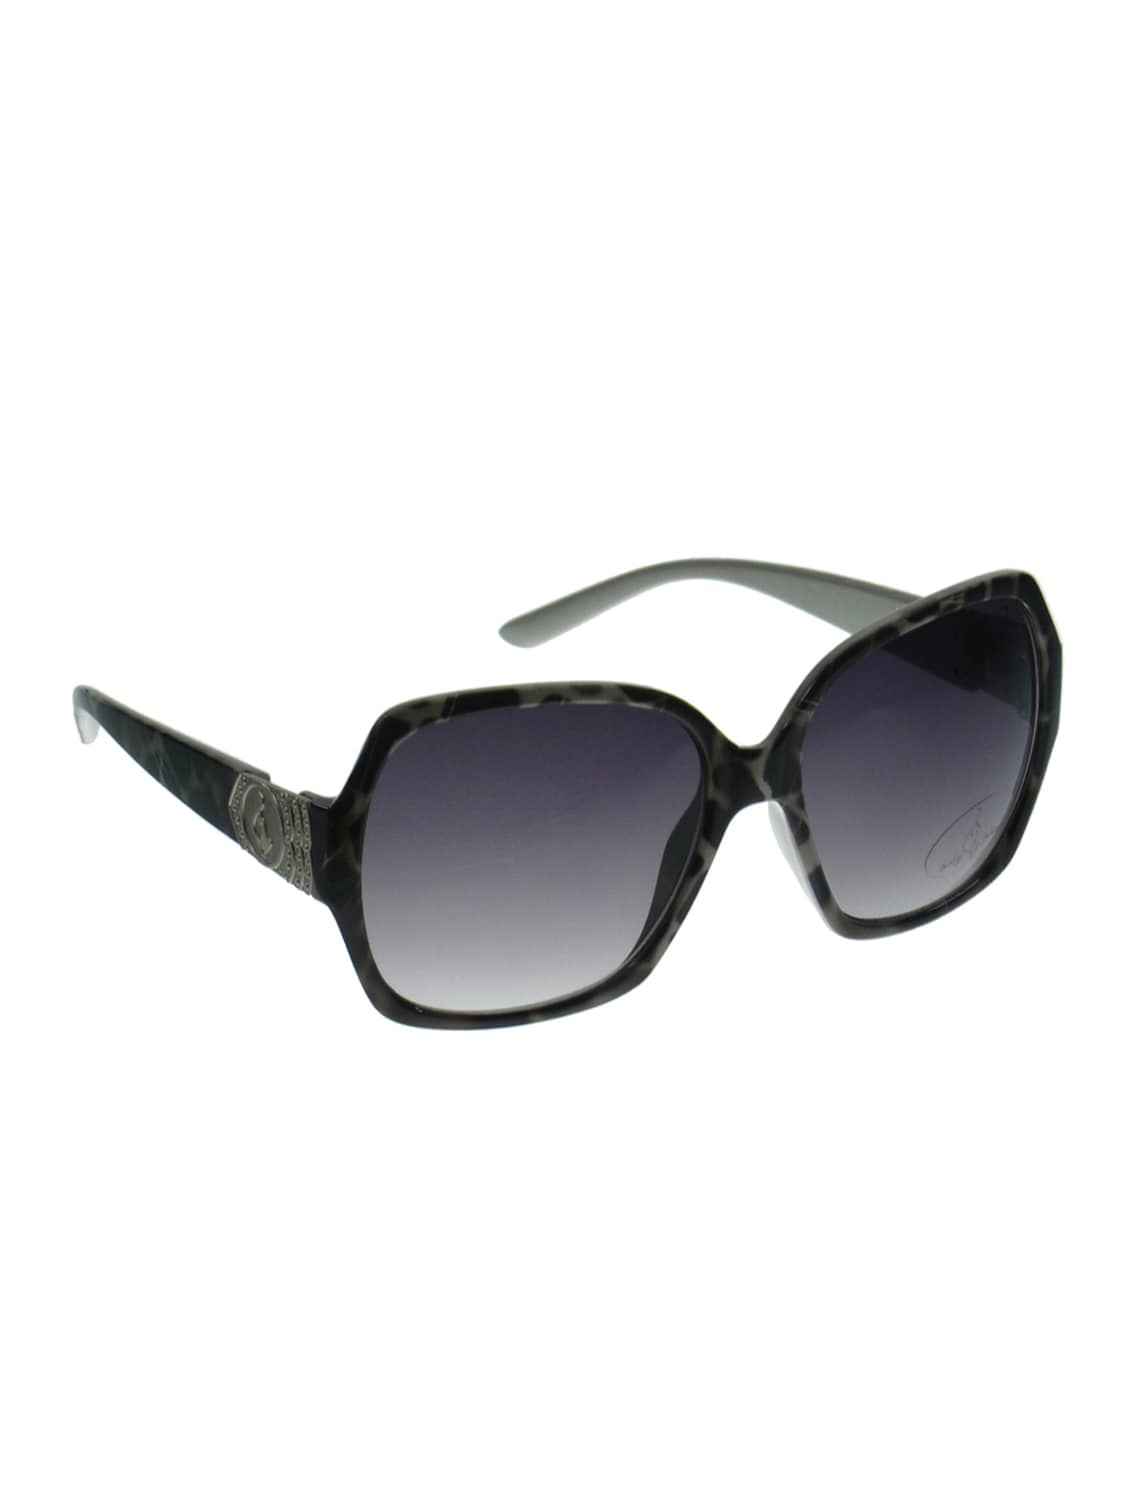 4f23cef252 Buy Baby Phat Bp-2065-tiger Sunglass by Baby Phat - Online shopping for  Sunglasses in India